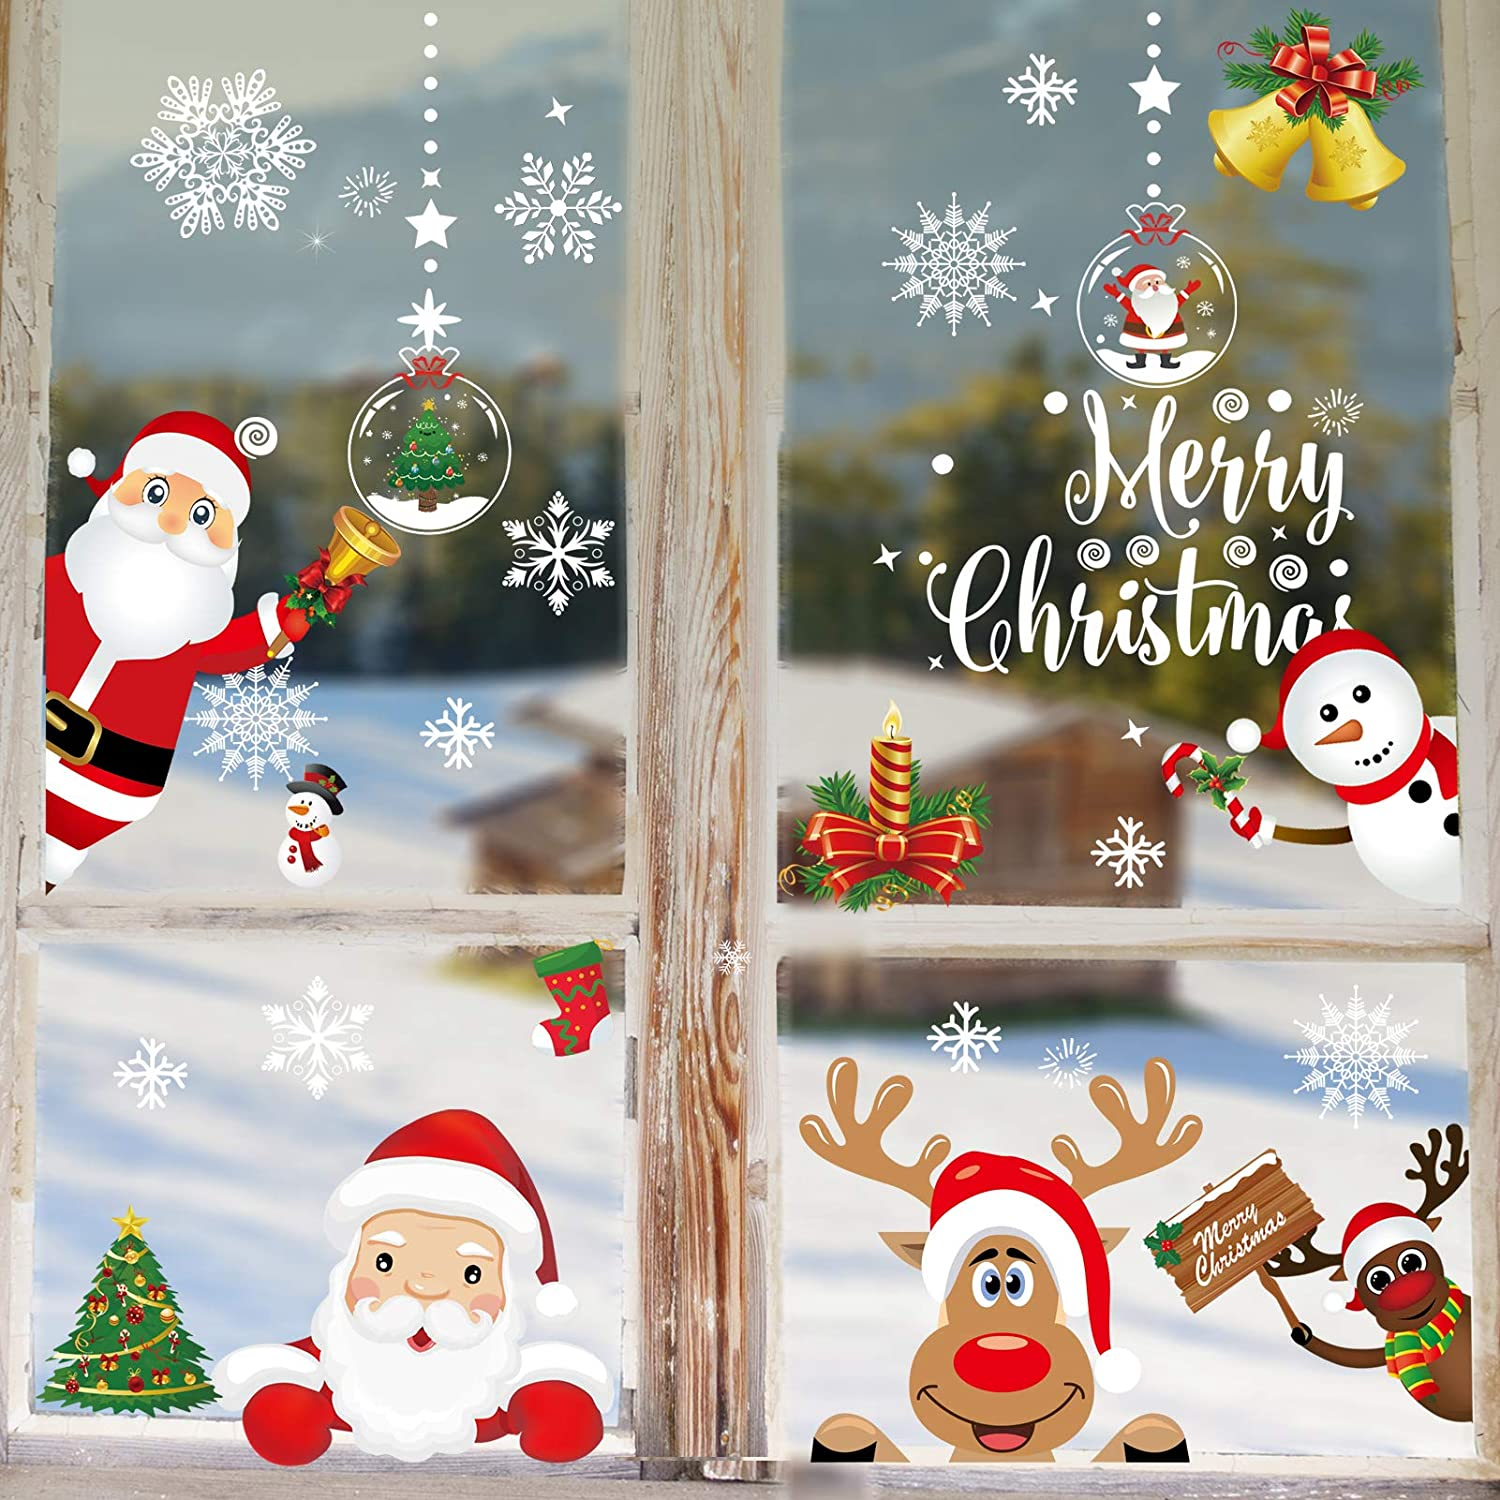 Danvren Christmas Window Clings Decorations, Snowflake Reindeer Santa Claus Window Stickers for for Winter Decor Xmas Party Supplies (11 Sheets)